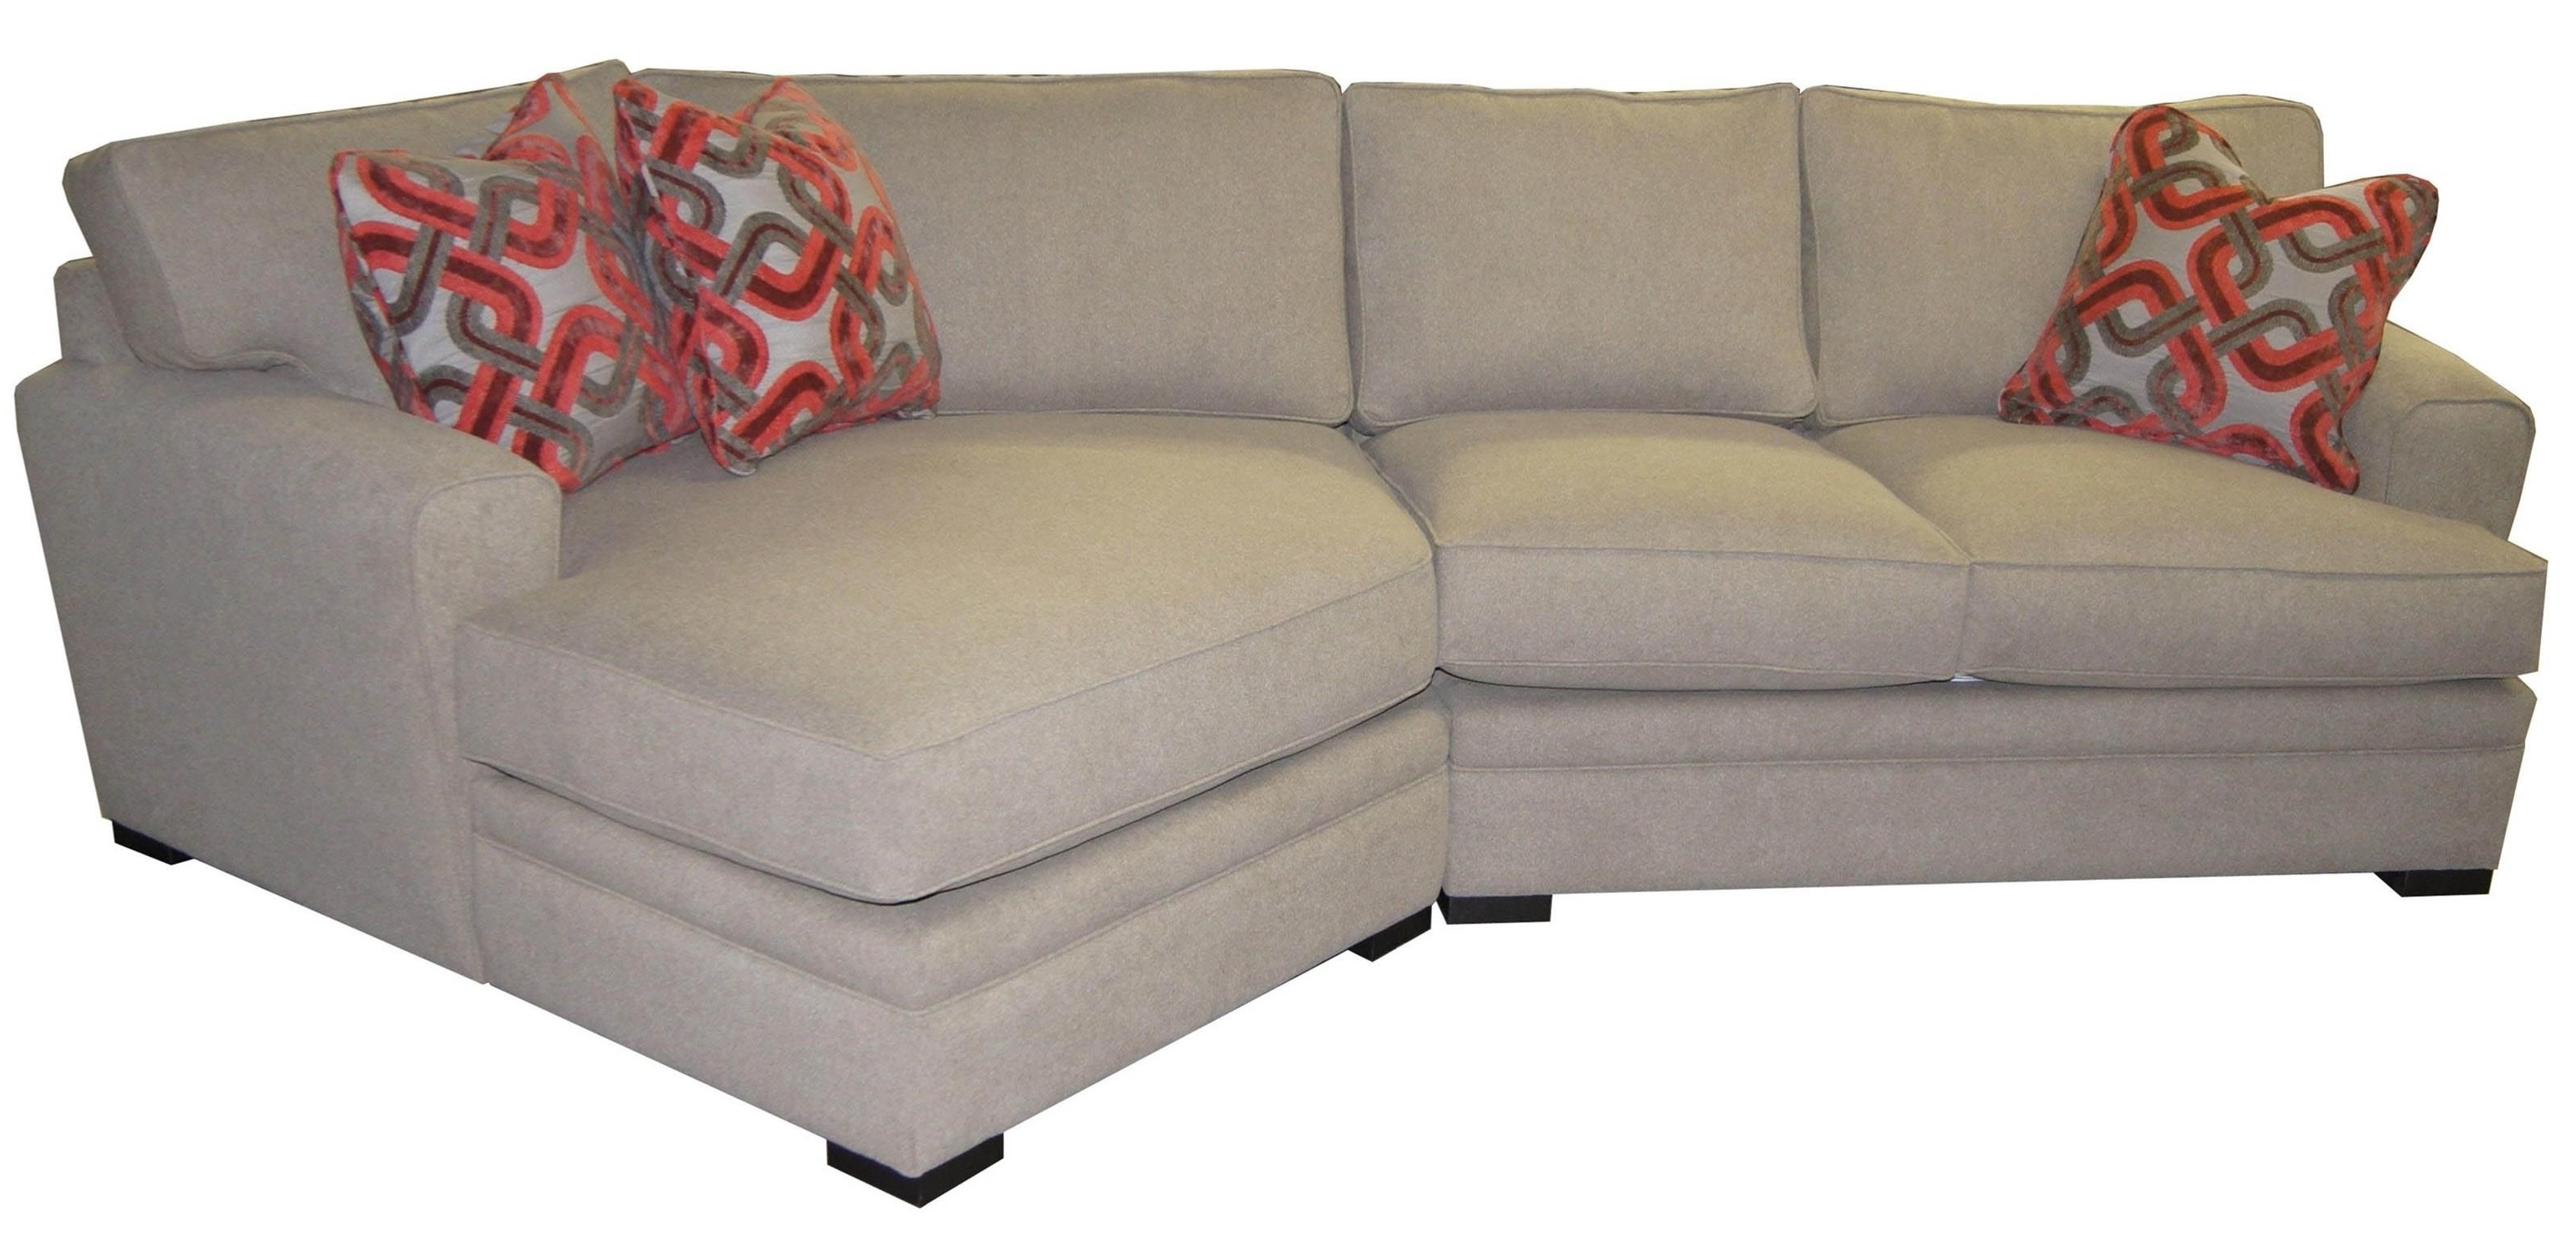 Most Popular Jonathan Louis Aries Casual Sectional Sofa With Rolled Arms – John Inside Pittsburgh Sectional Sofas (View 16 of 20)